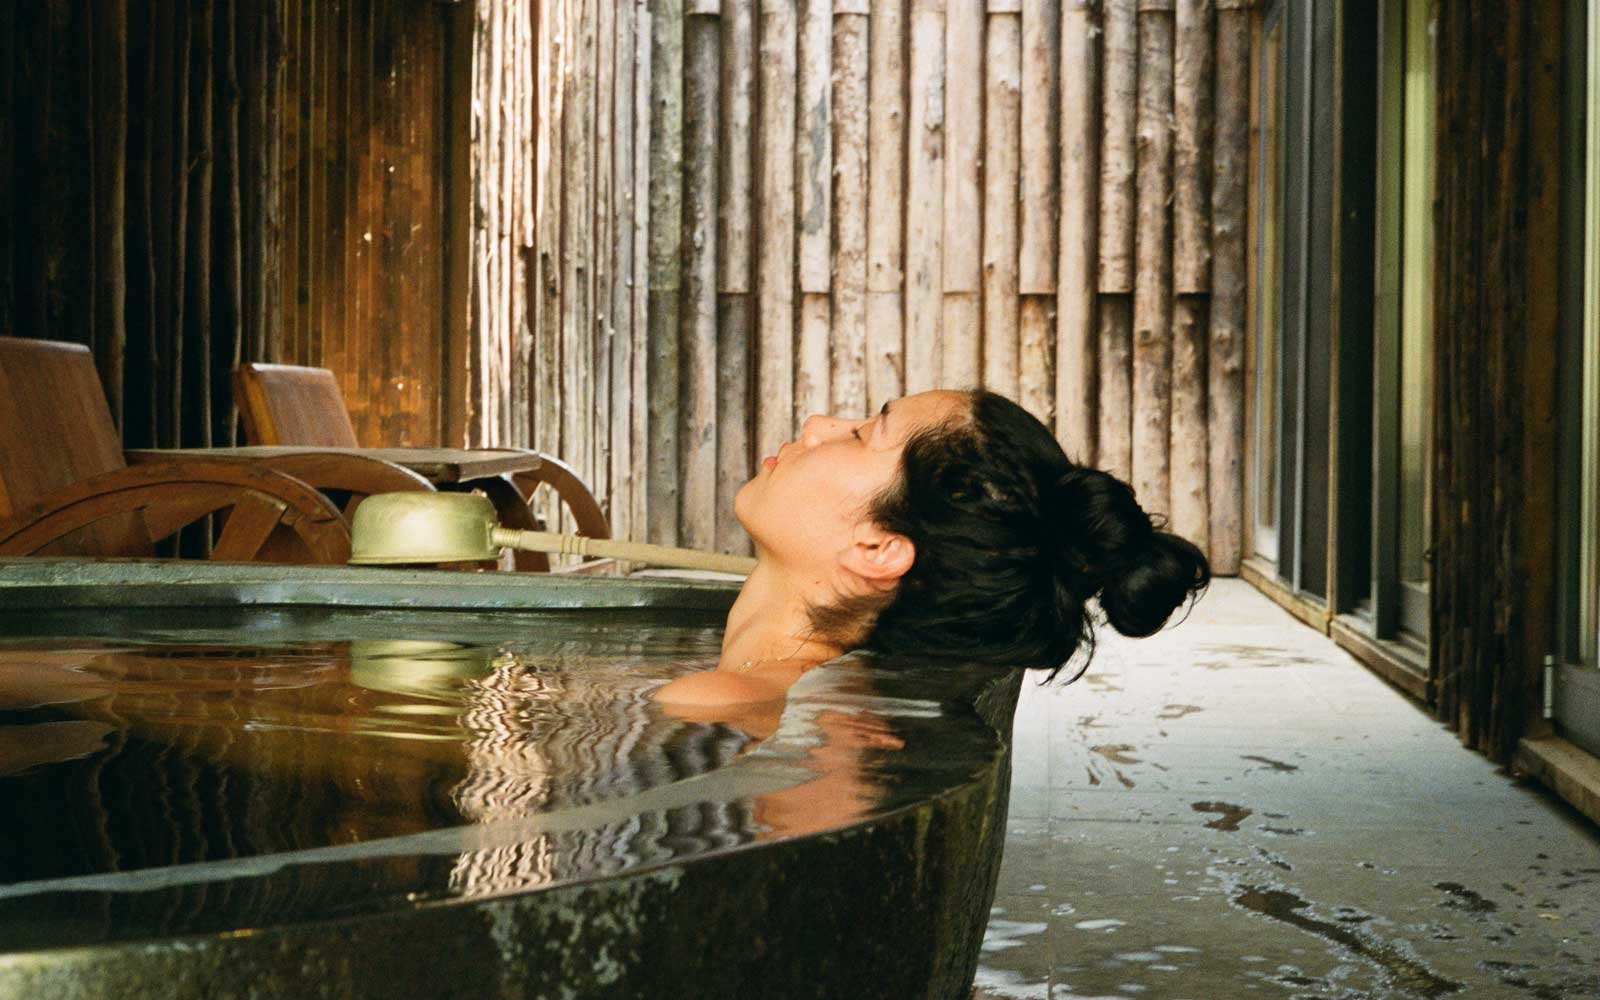 Geothermal bath at Zaborin Ryokan, in Japan